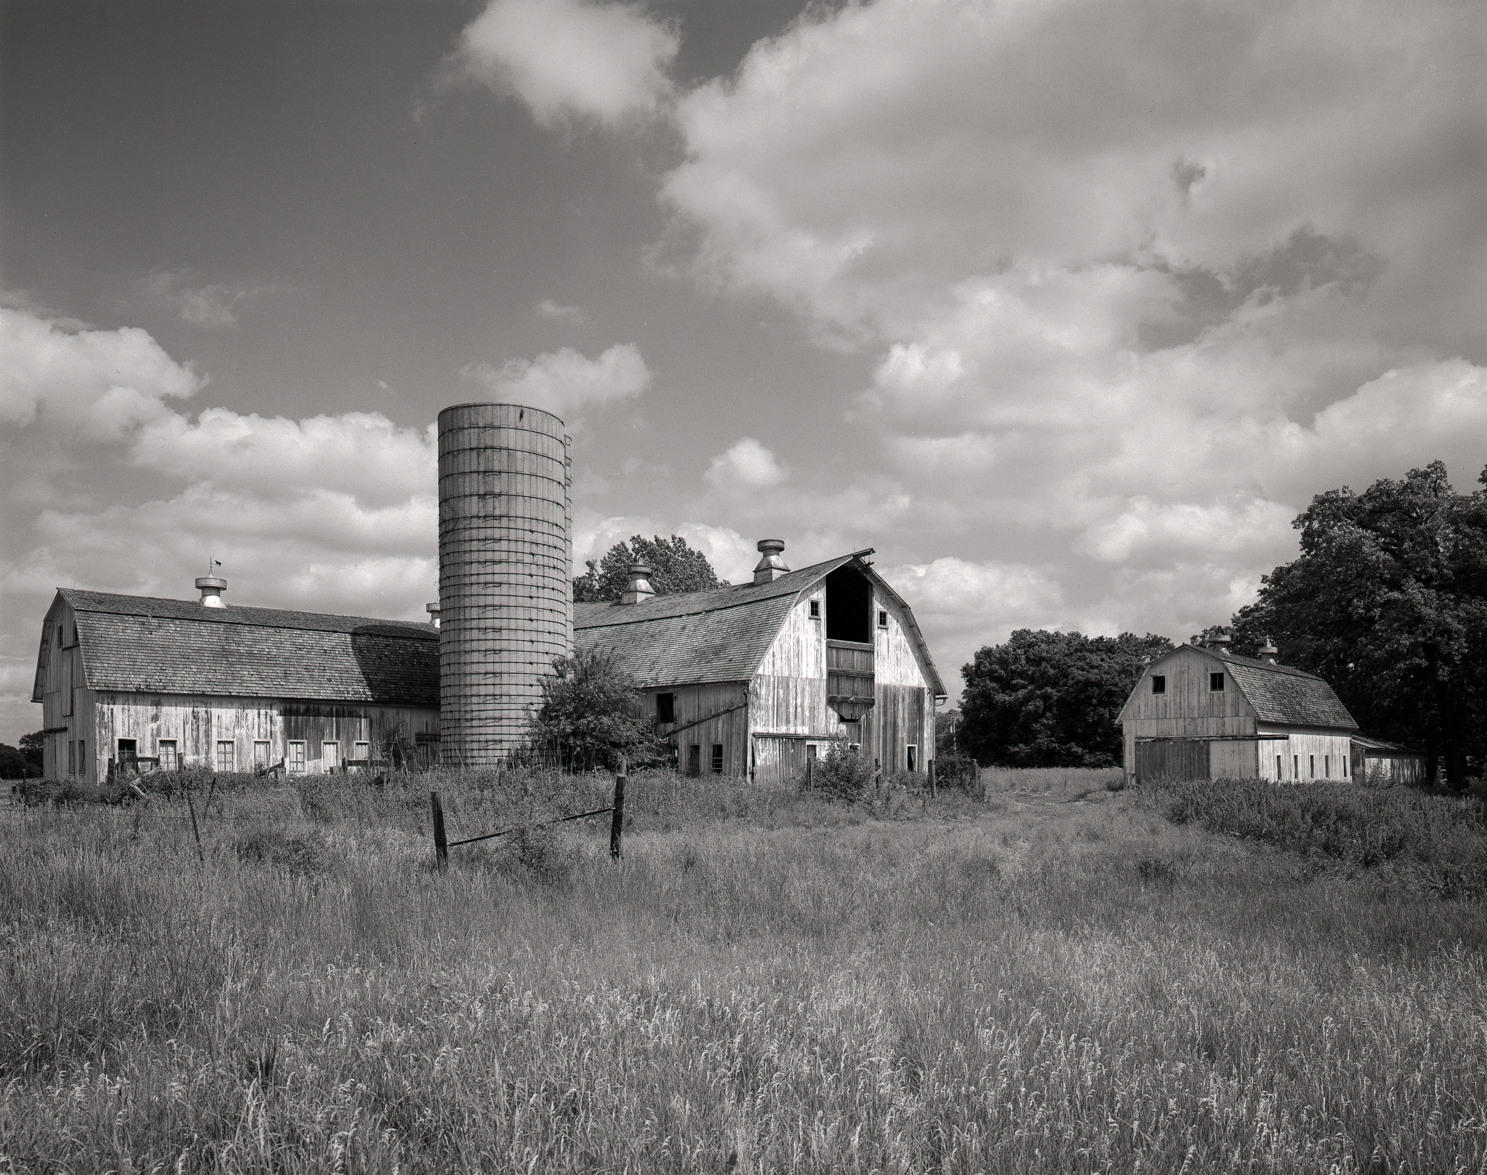 Burks Rueckert Barn and Silo Illinois 2001